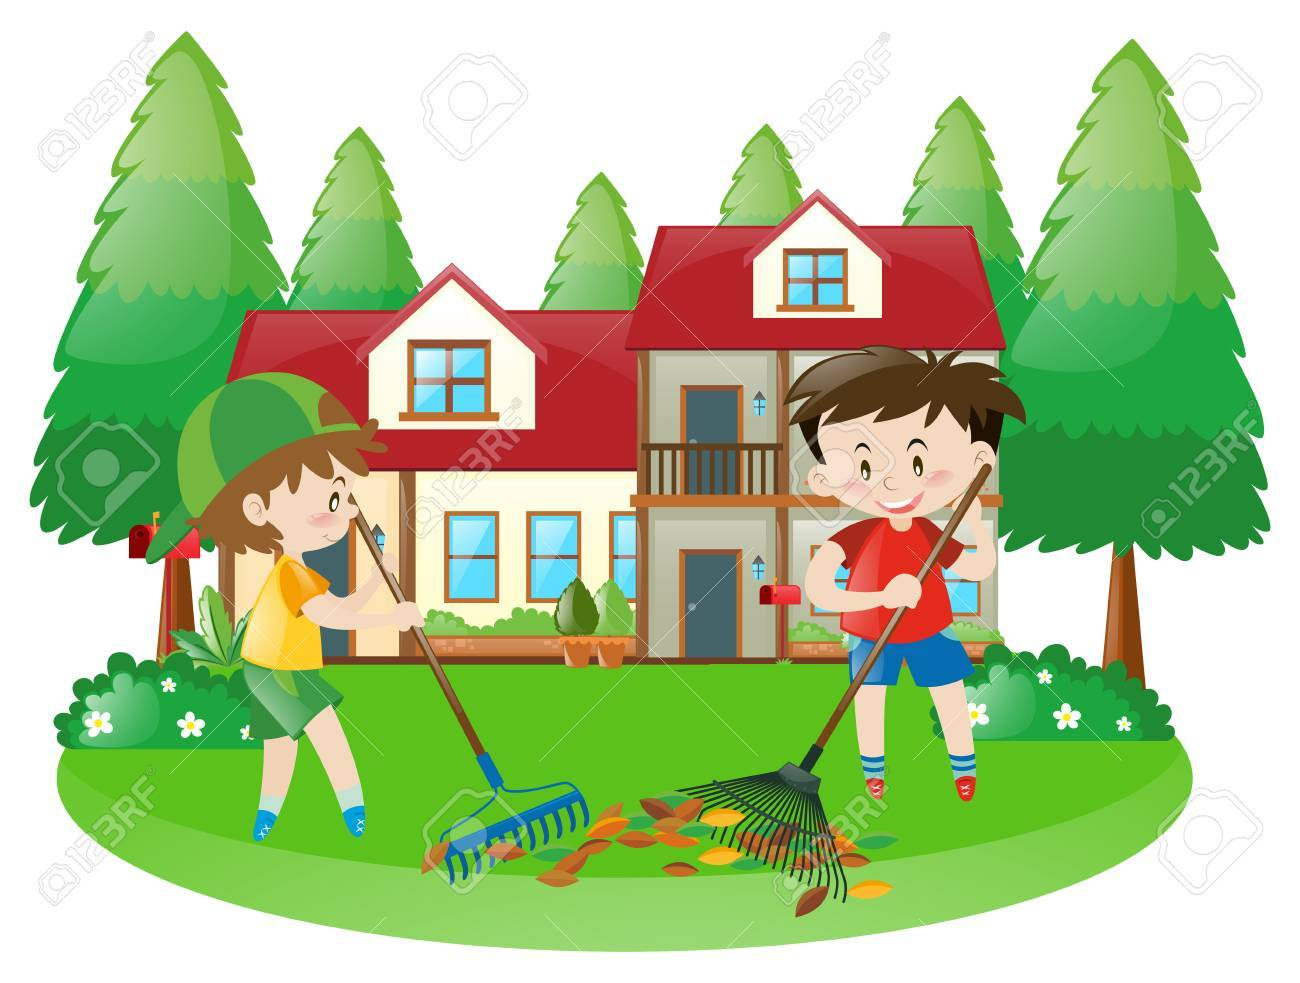 hight resolution of scene with two boys raking dried leaves illustration stock vector 63486213